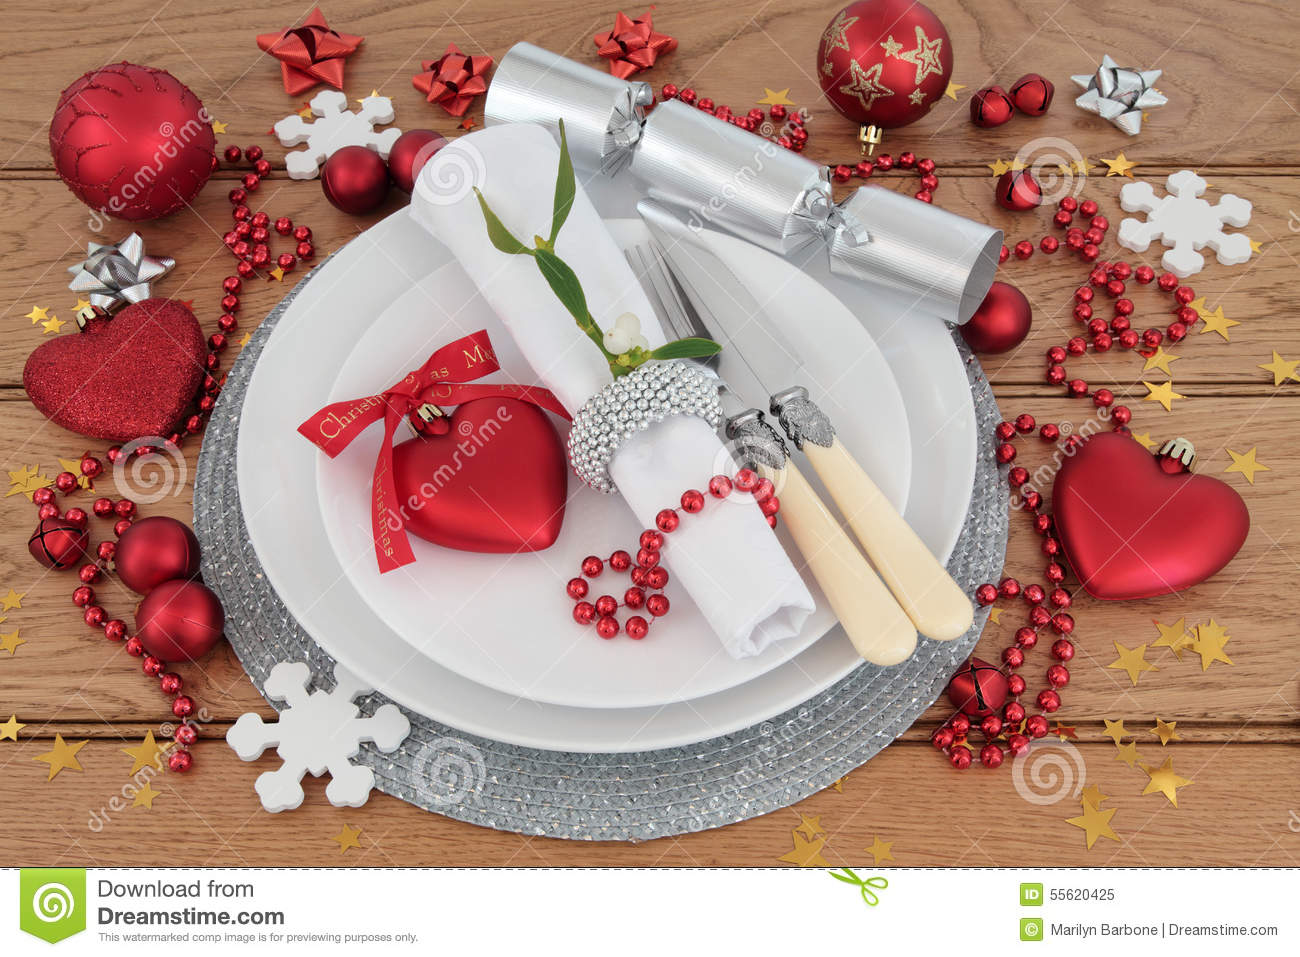 Extraordinary 90 christmas place settings design Christmas place setting ideas